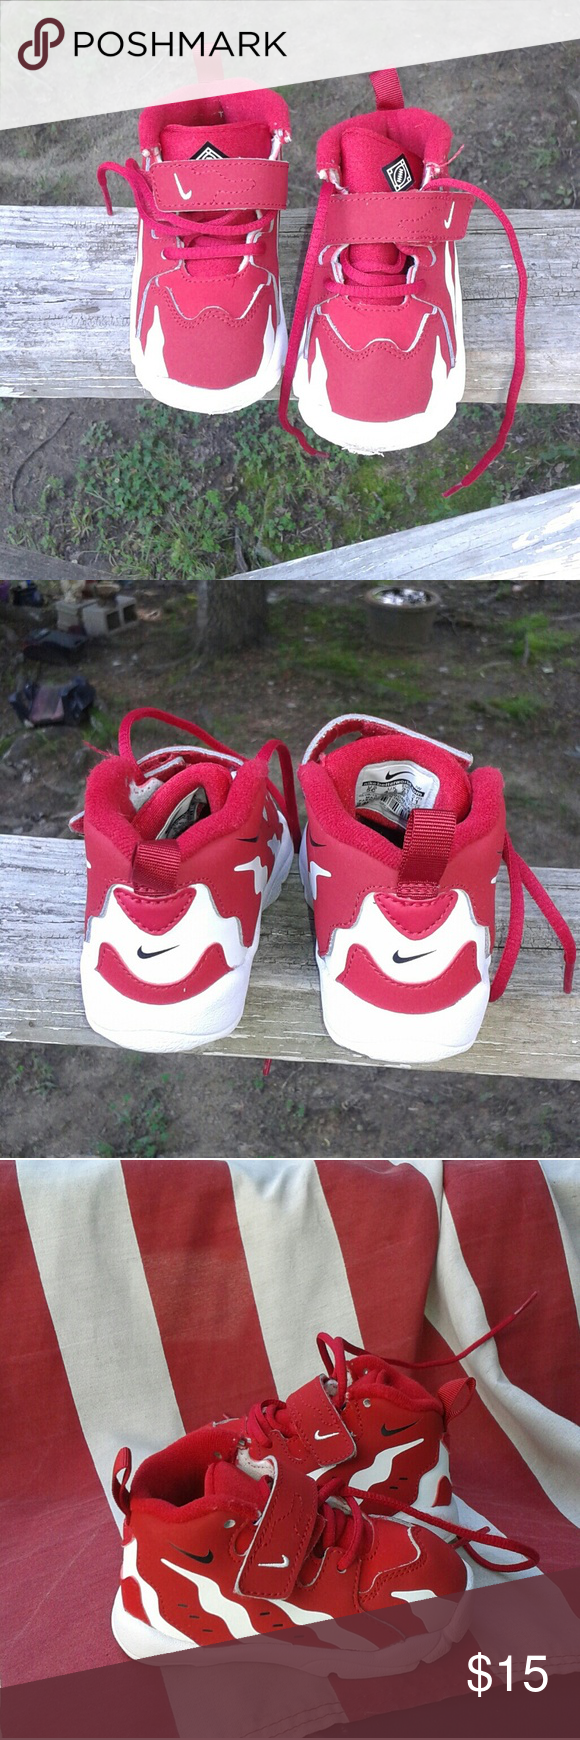 Selling this Nike Max 96 toddler boy's Shoe's size 5c on Poshmark! My  username is